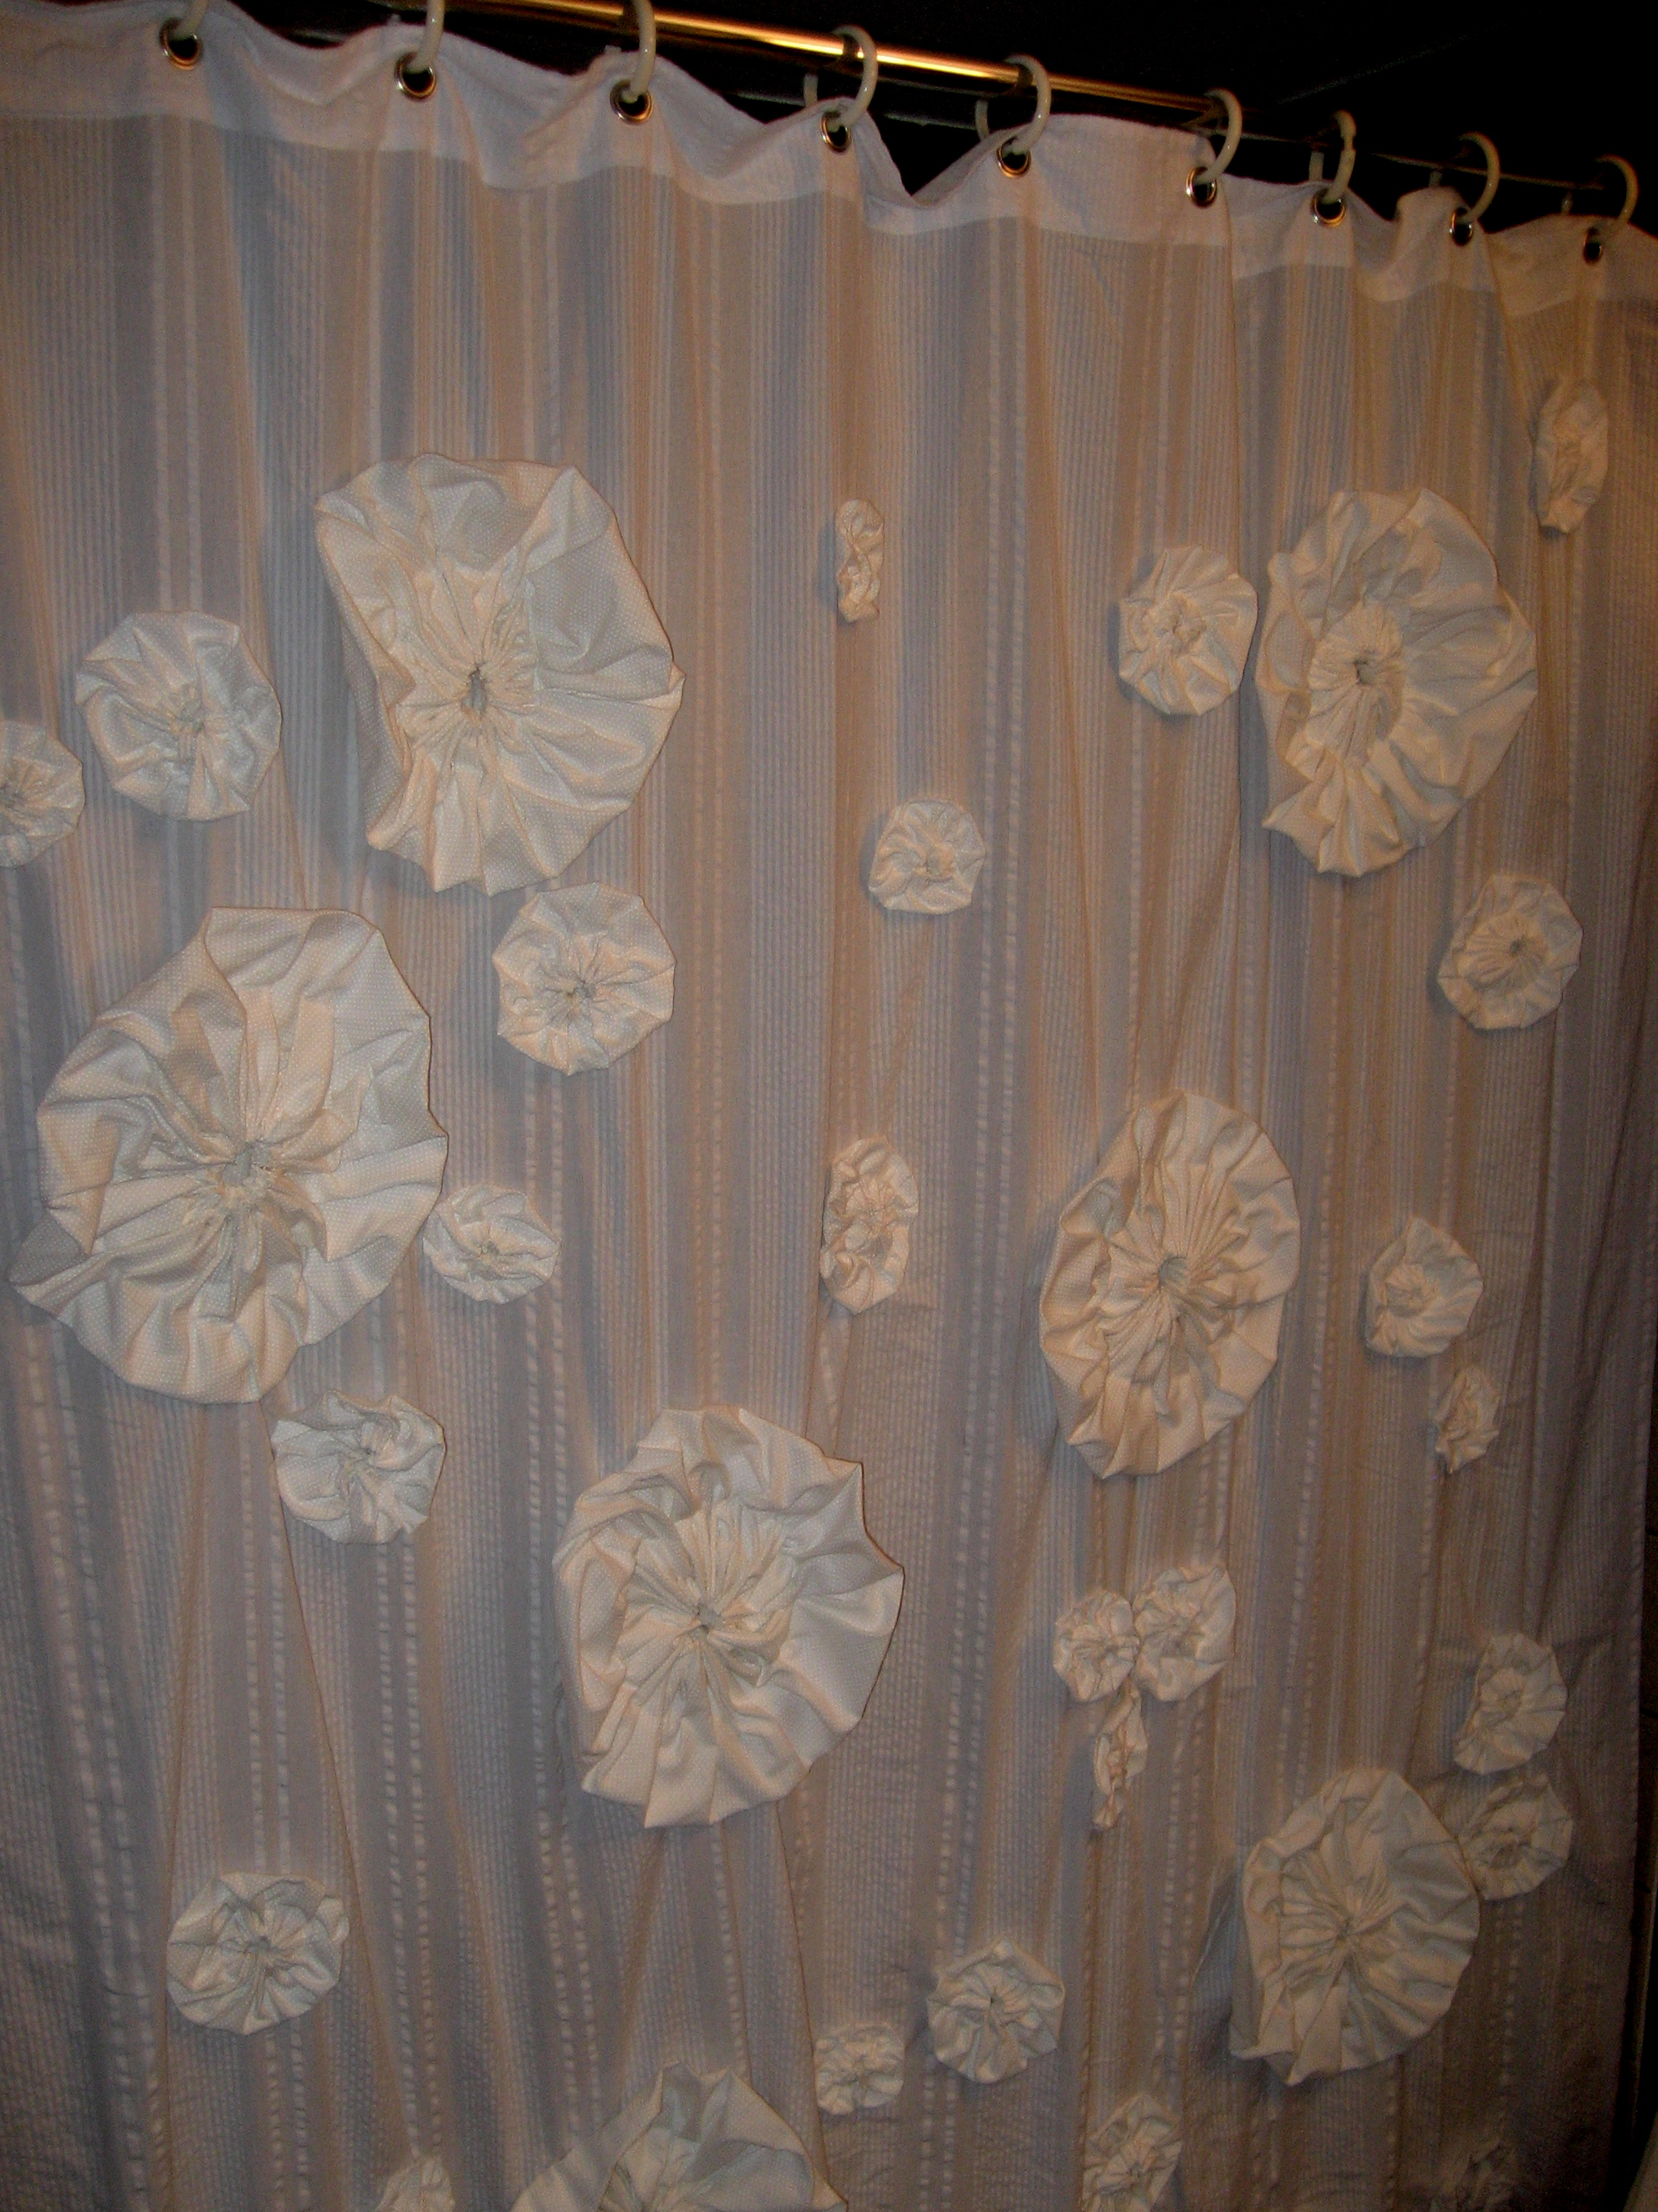 DIY Shower Curtain with Flower Poufs | Erin Ellacott